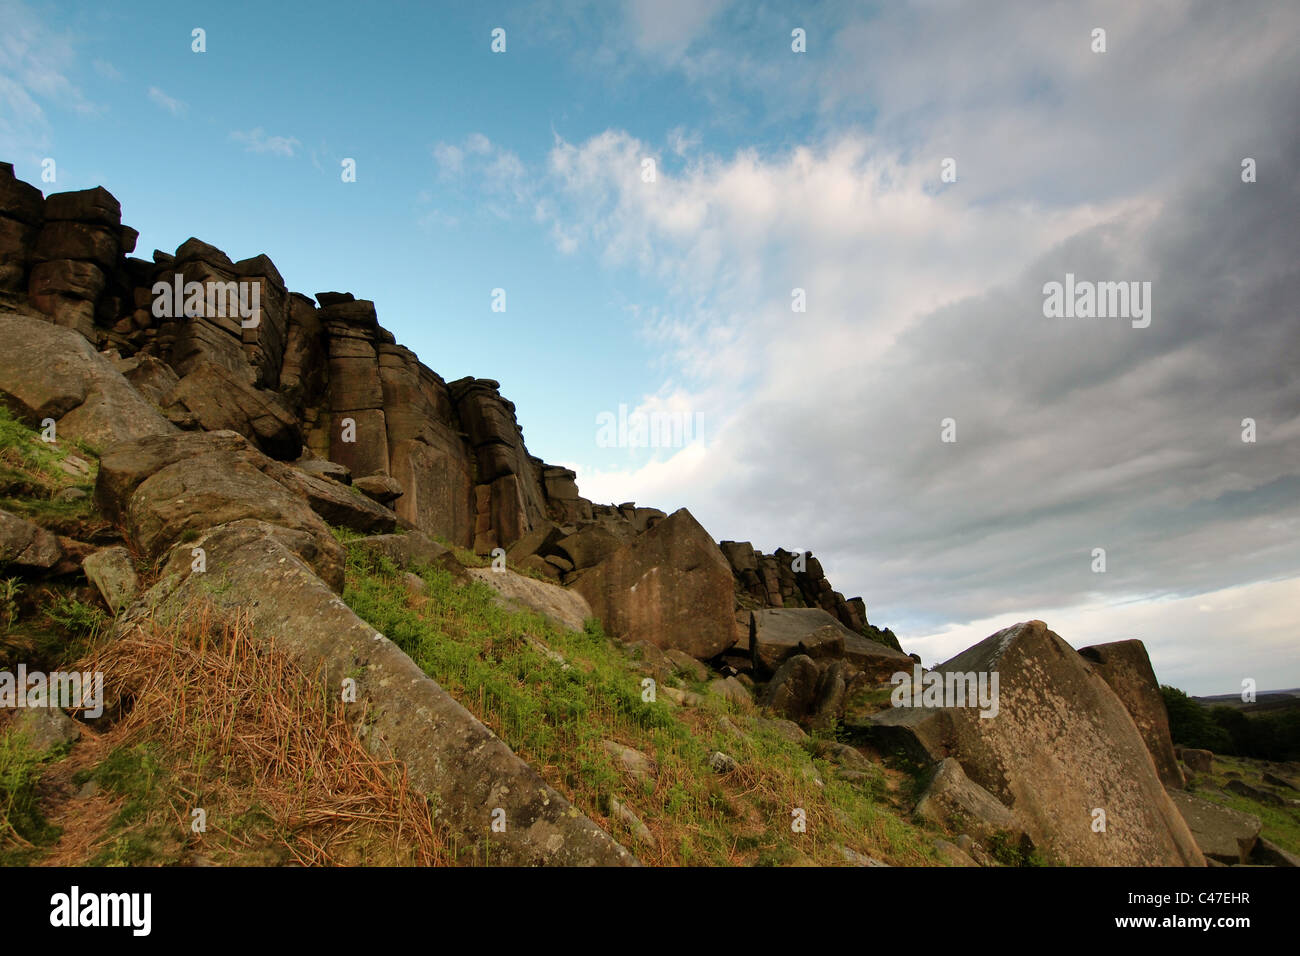 Stanage Edge rocky gritstone outcrop Peak District, Derbyshire, England, Great Britain - Stock Image